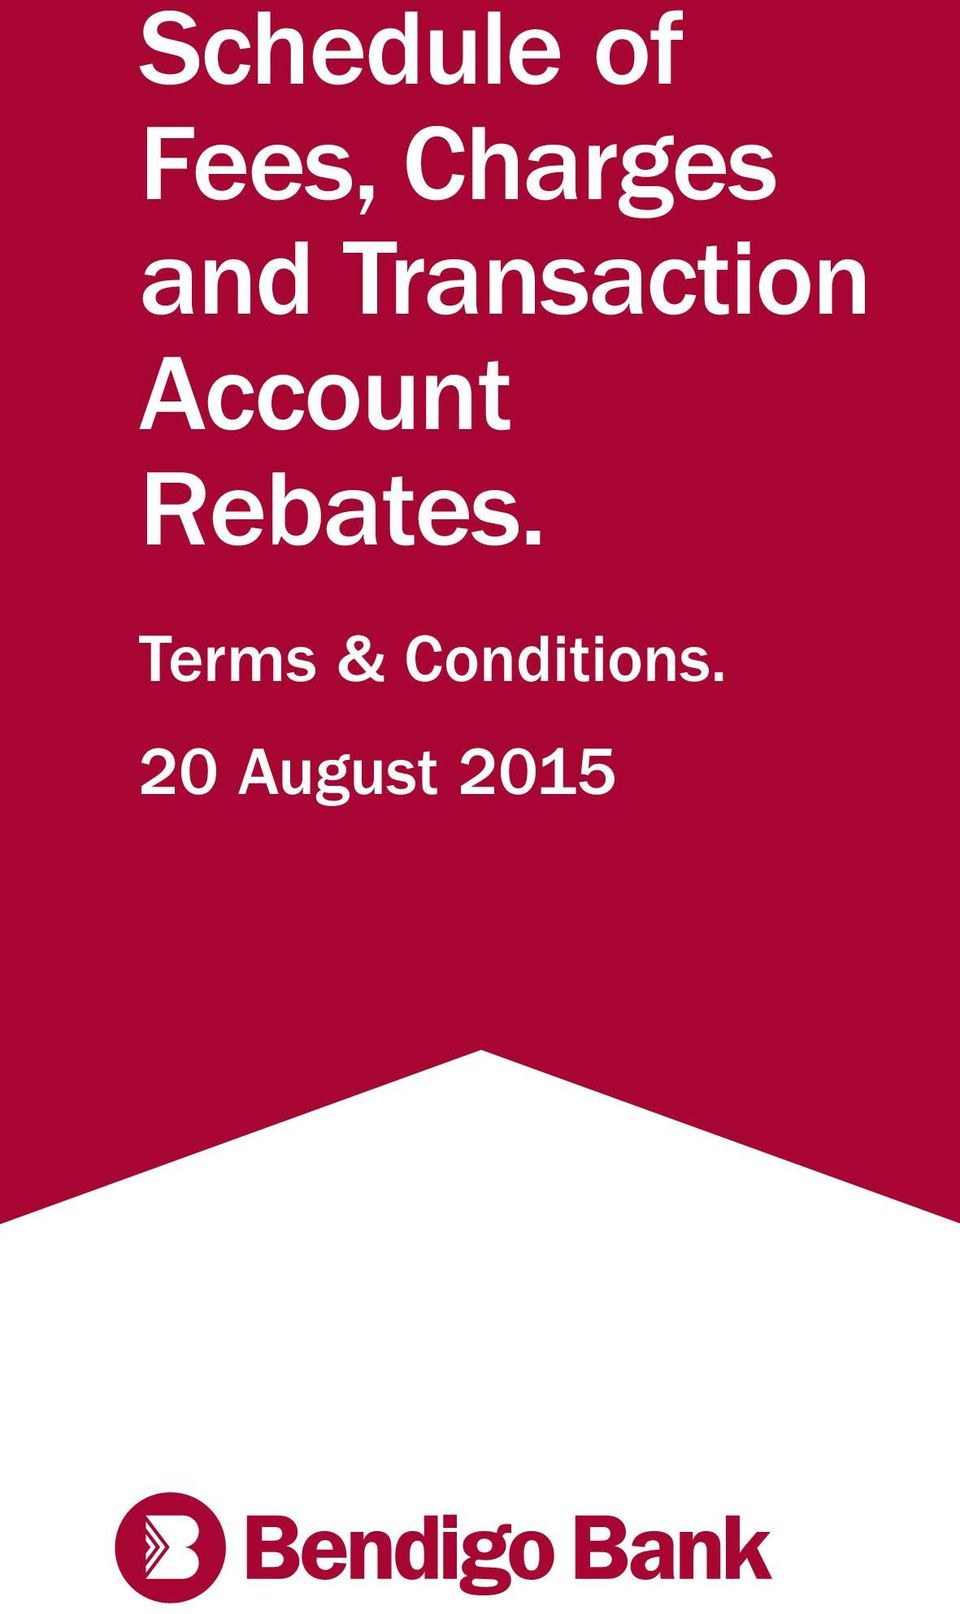 Rebates. Terms & Conditions.